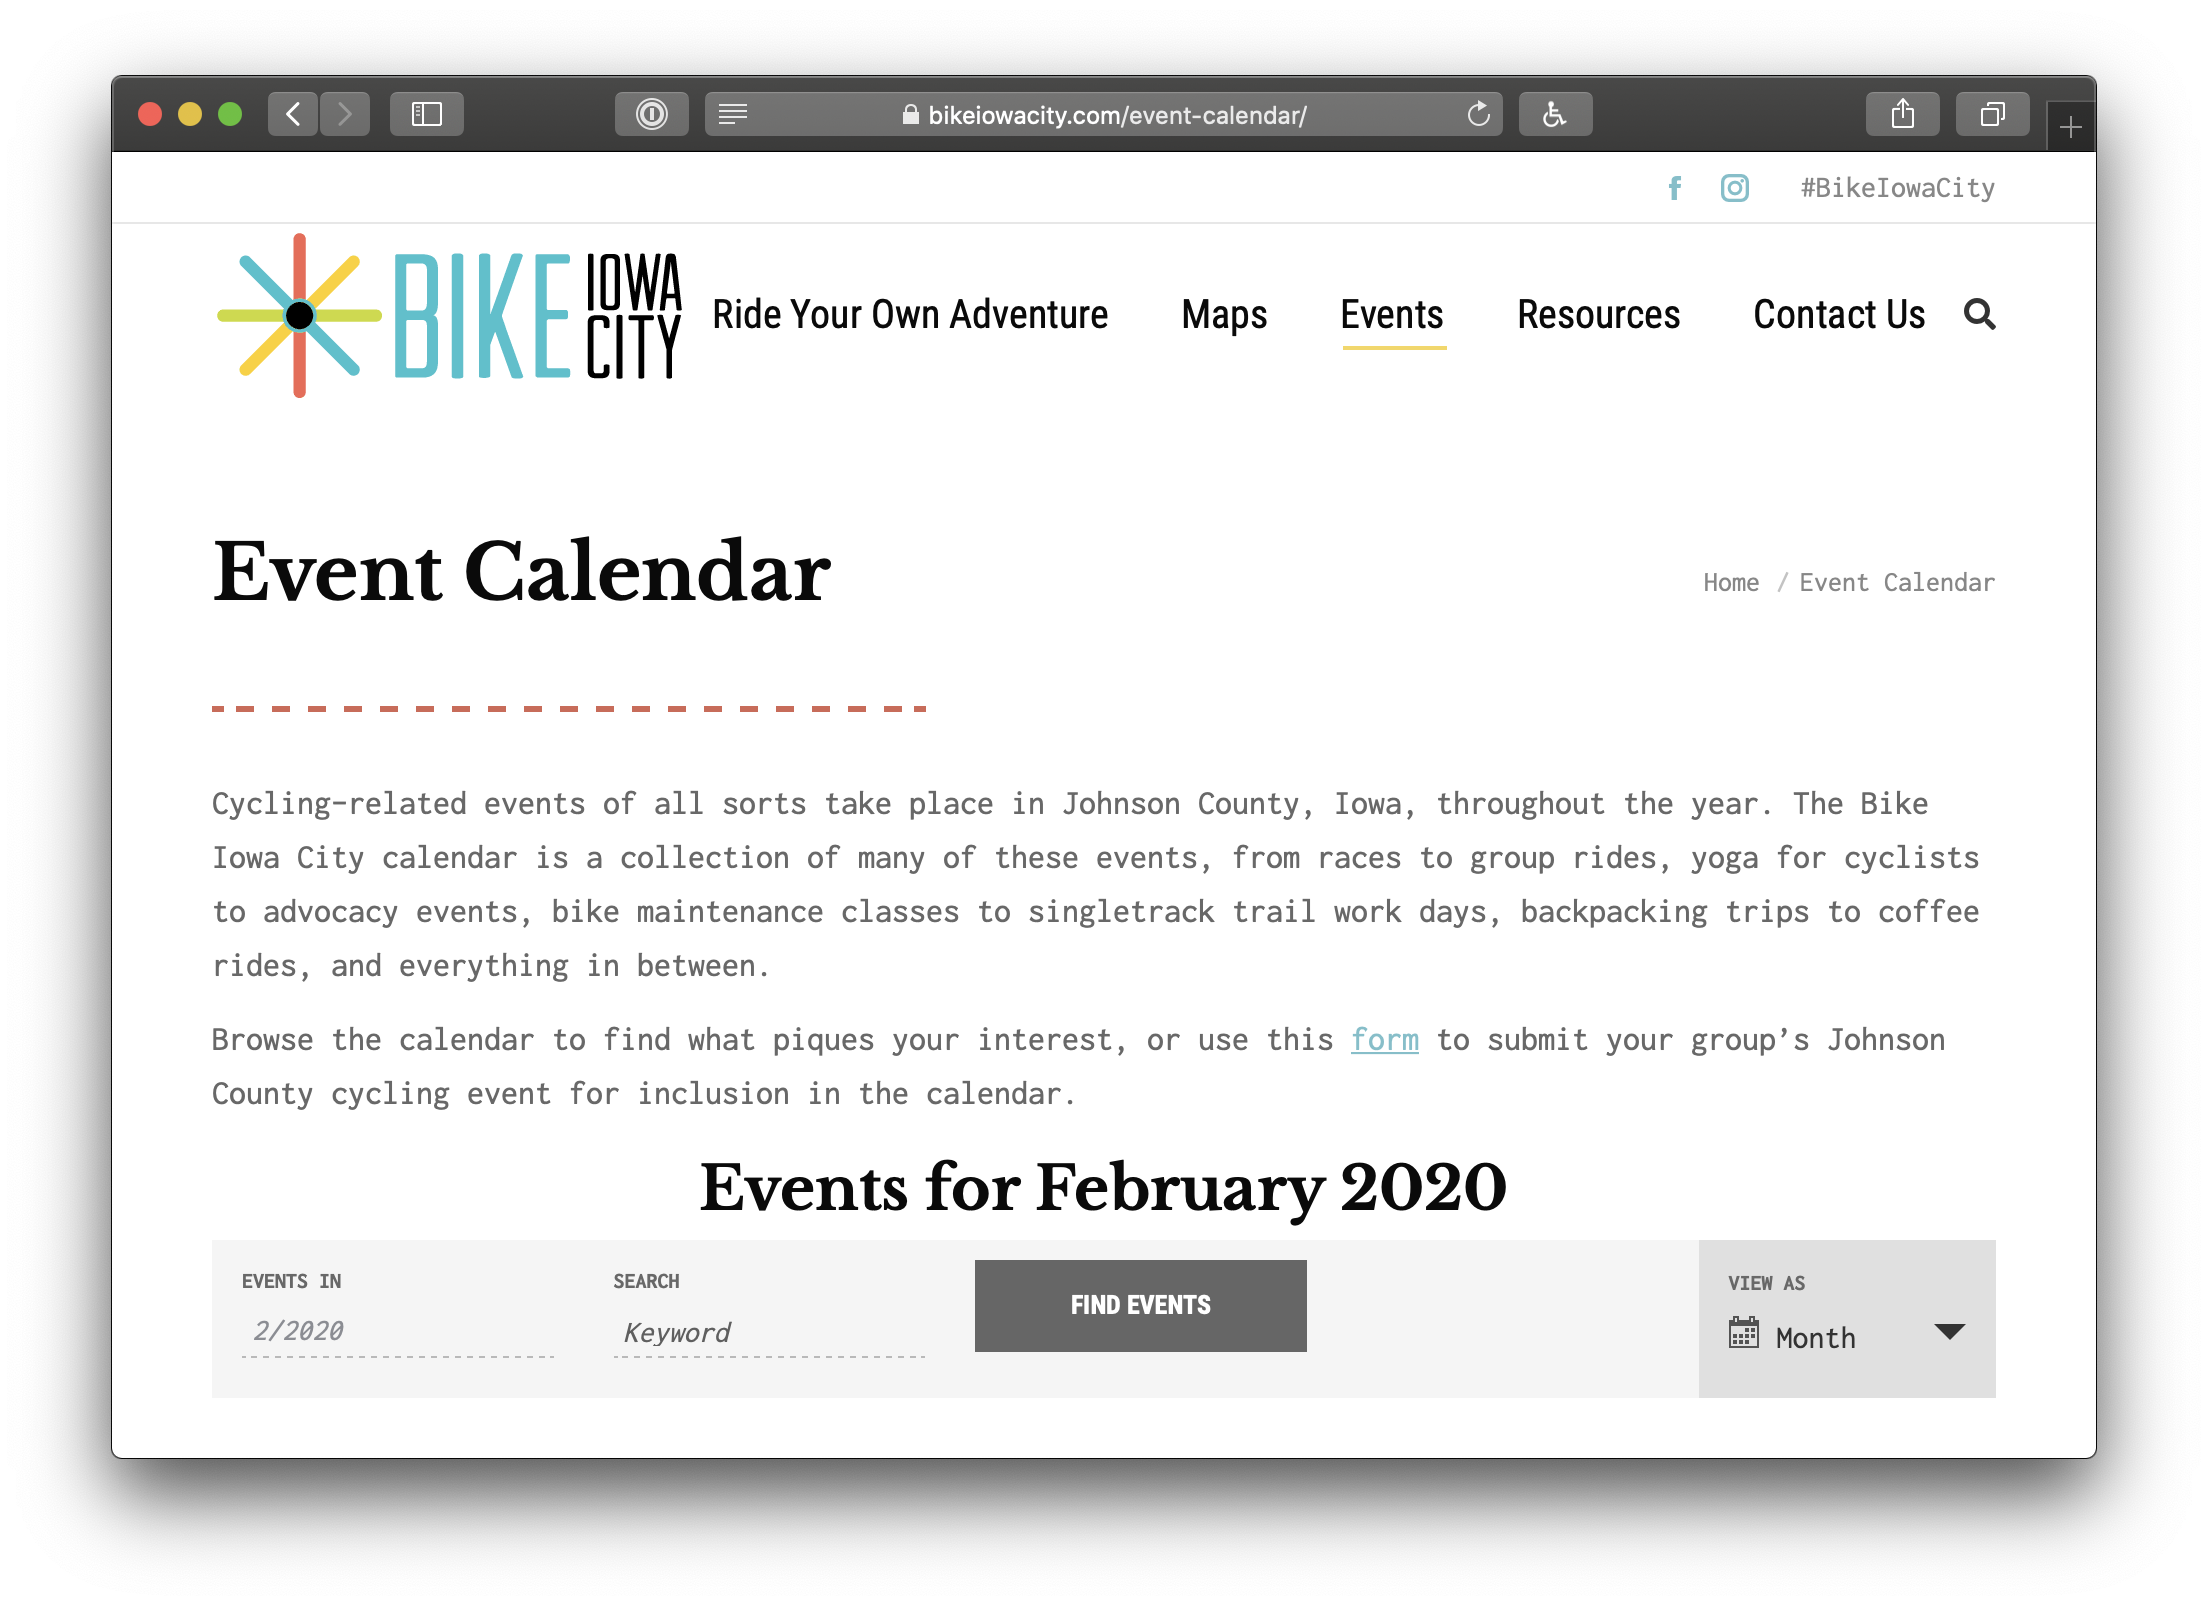 Showing the content above the website's calendar explaining how to submit events.